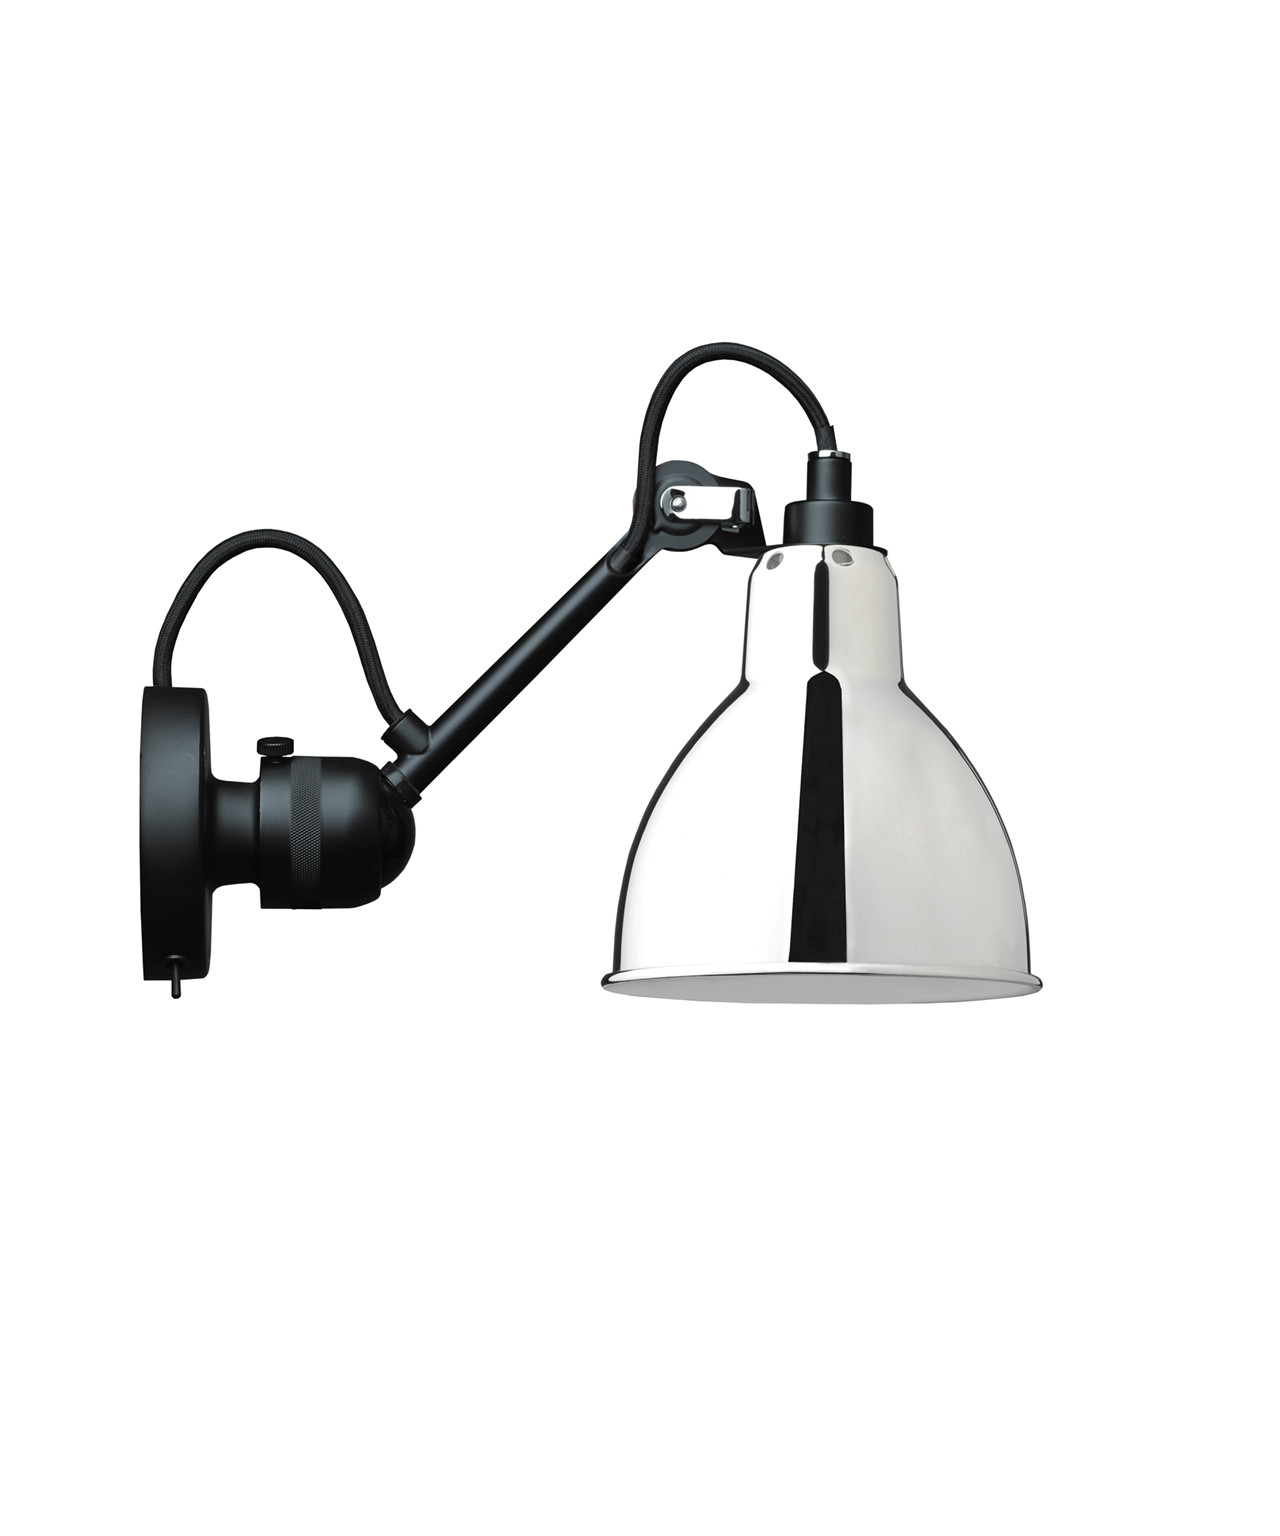 Image of   304SW Væglampe Krom/Glossy - Lampe Gras